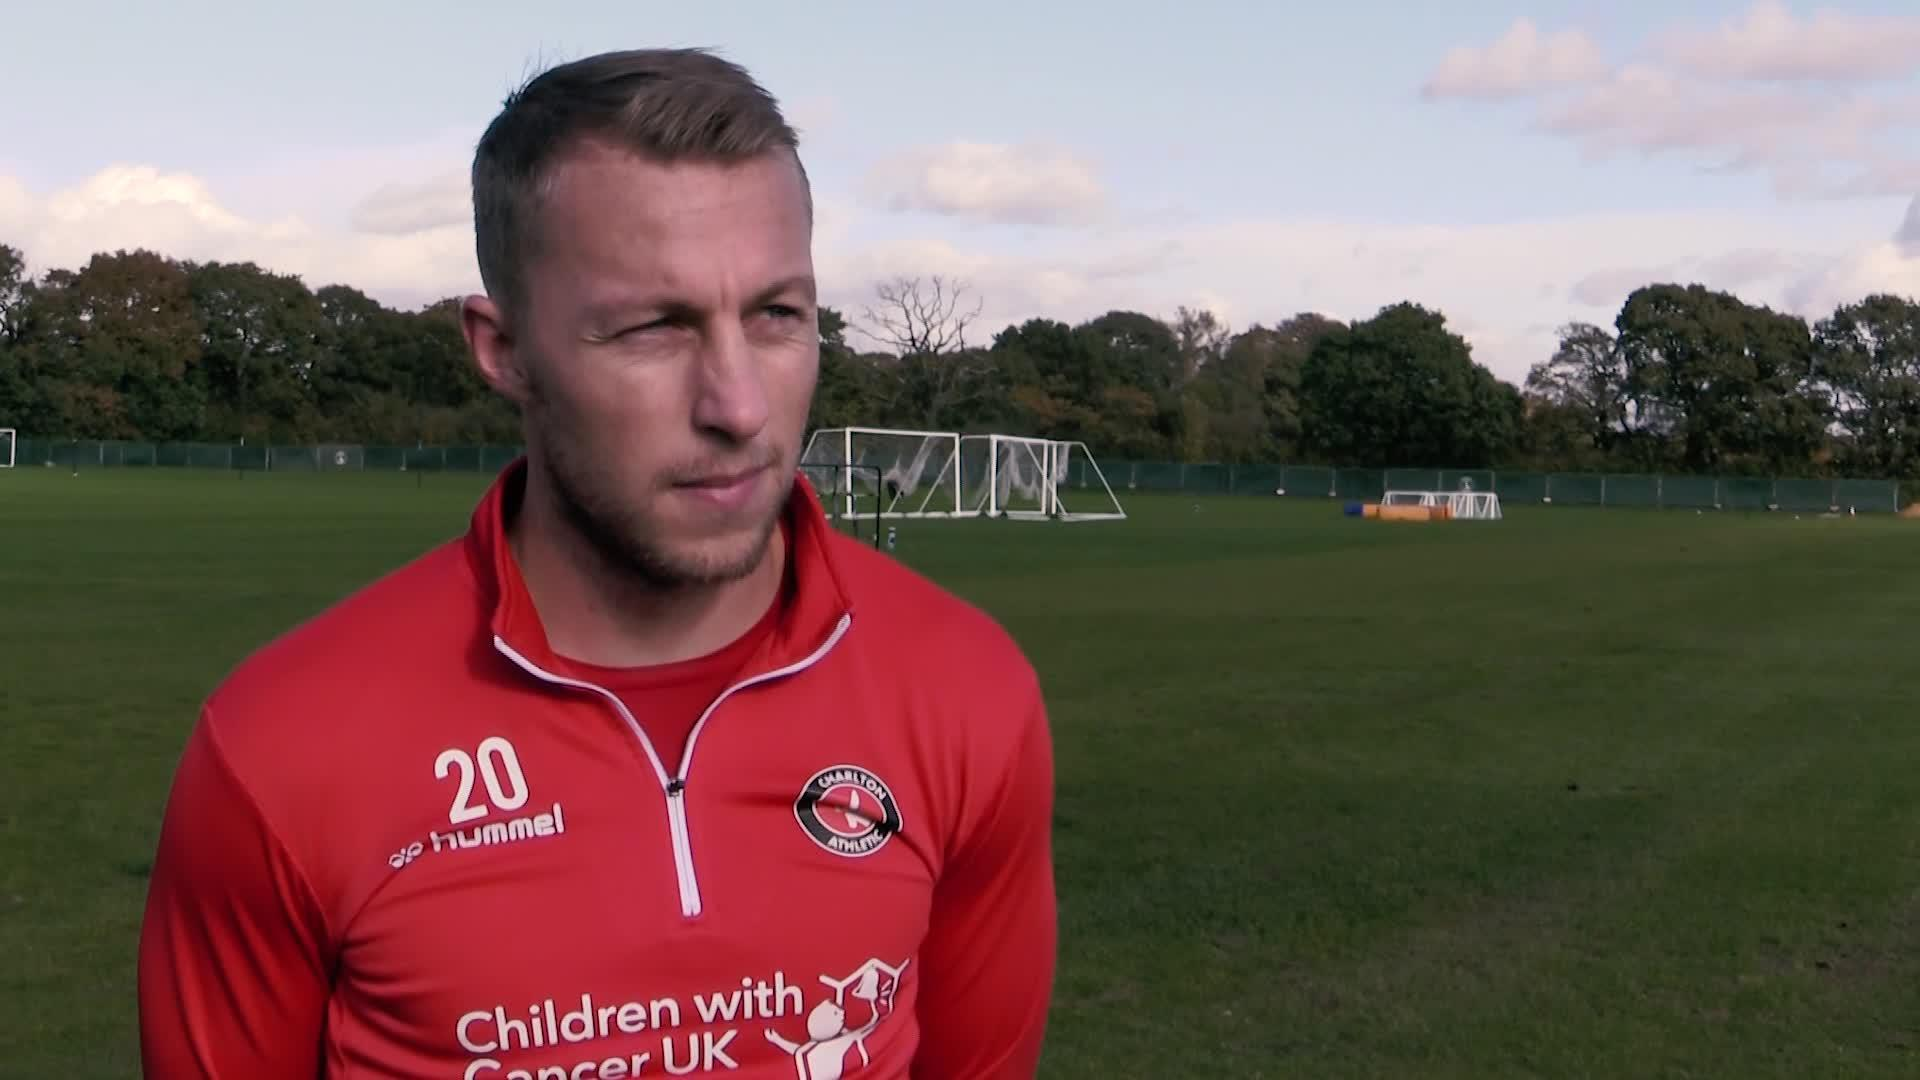 PRE-MATCH | Solly ready for derby day